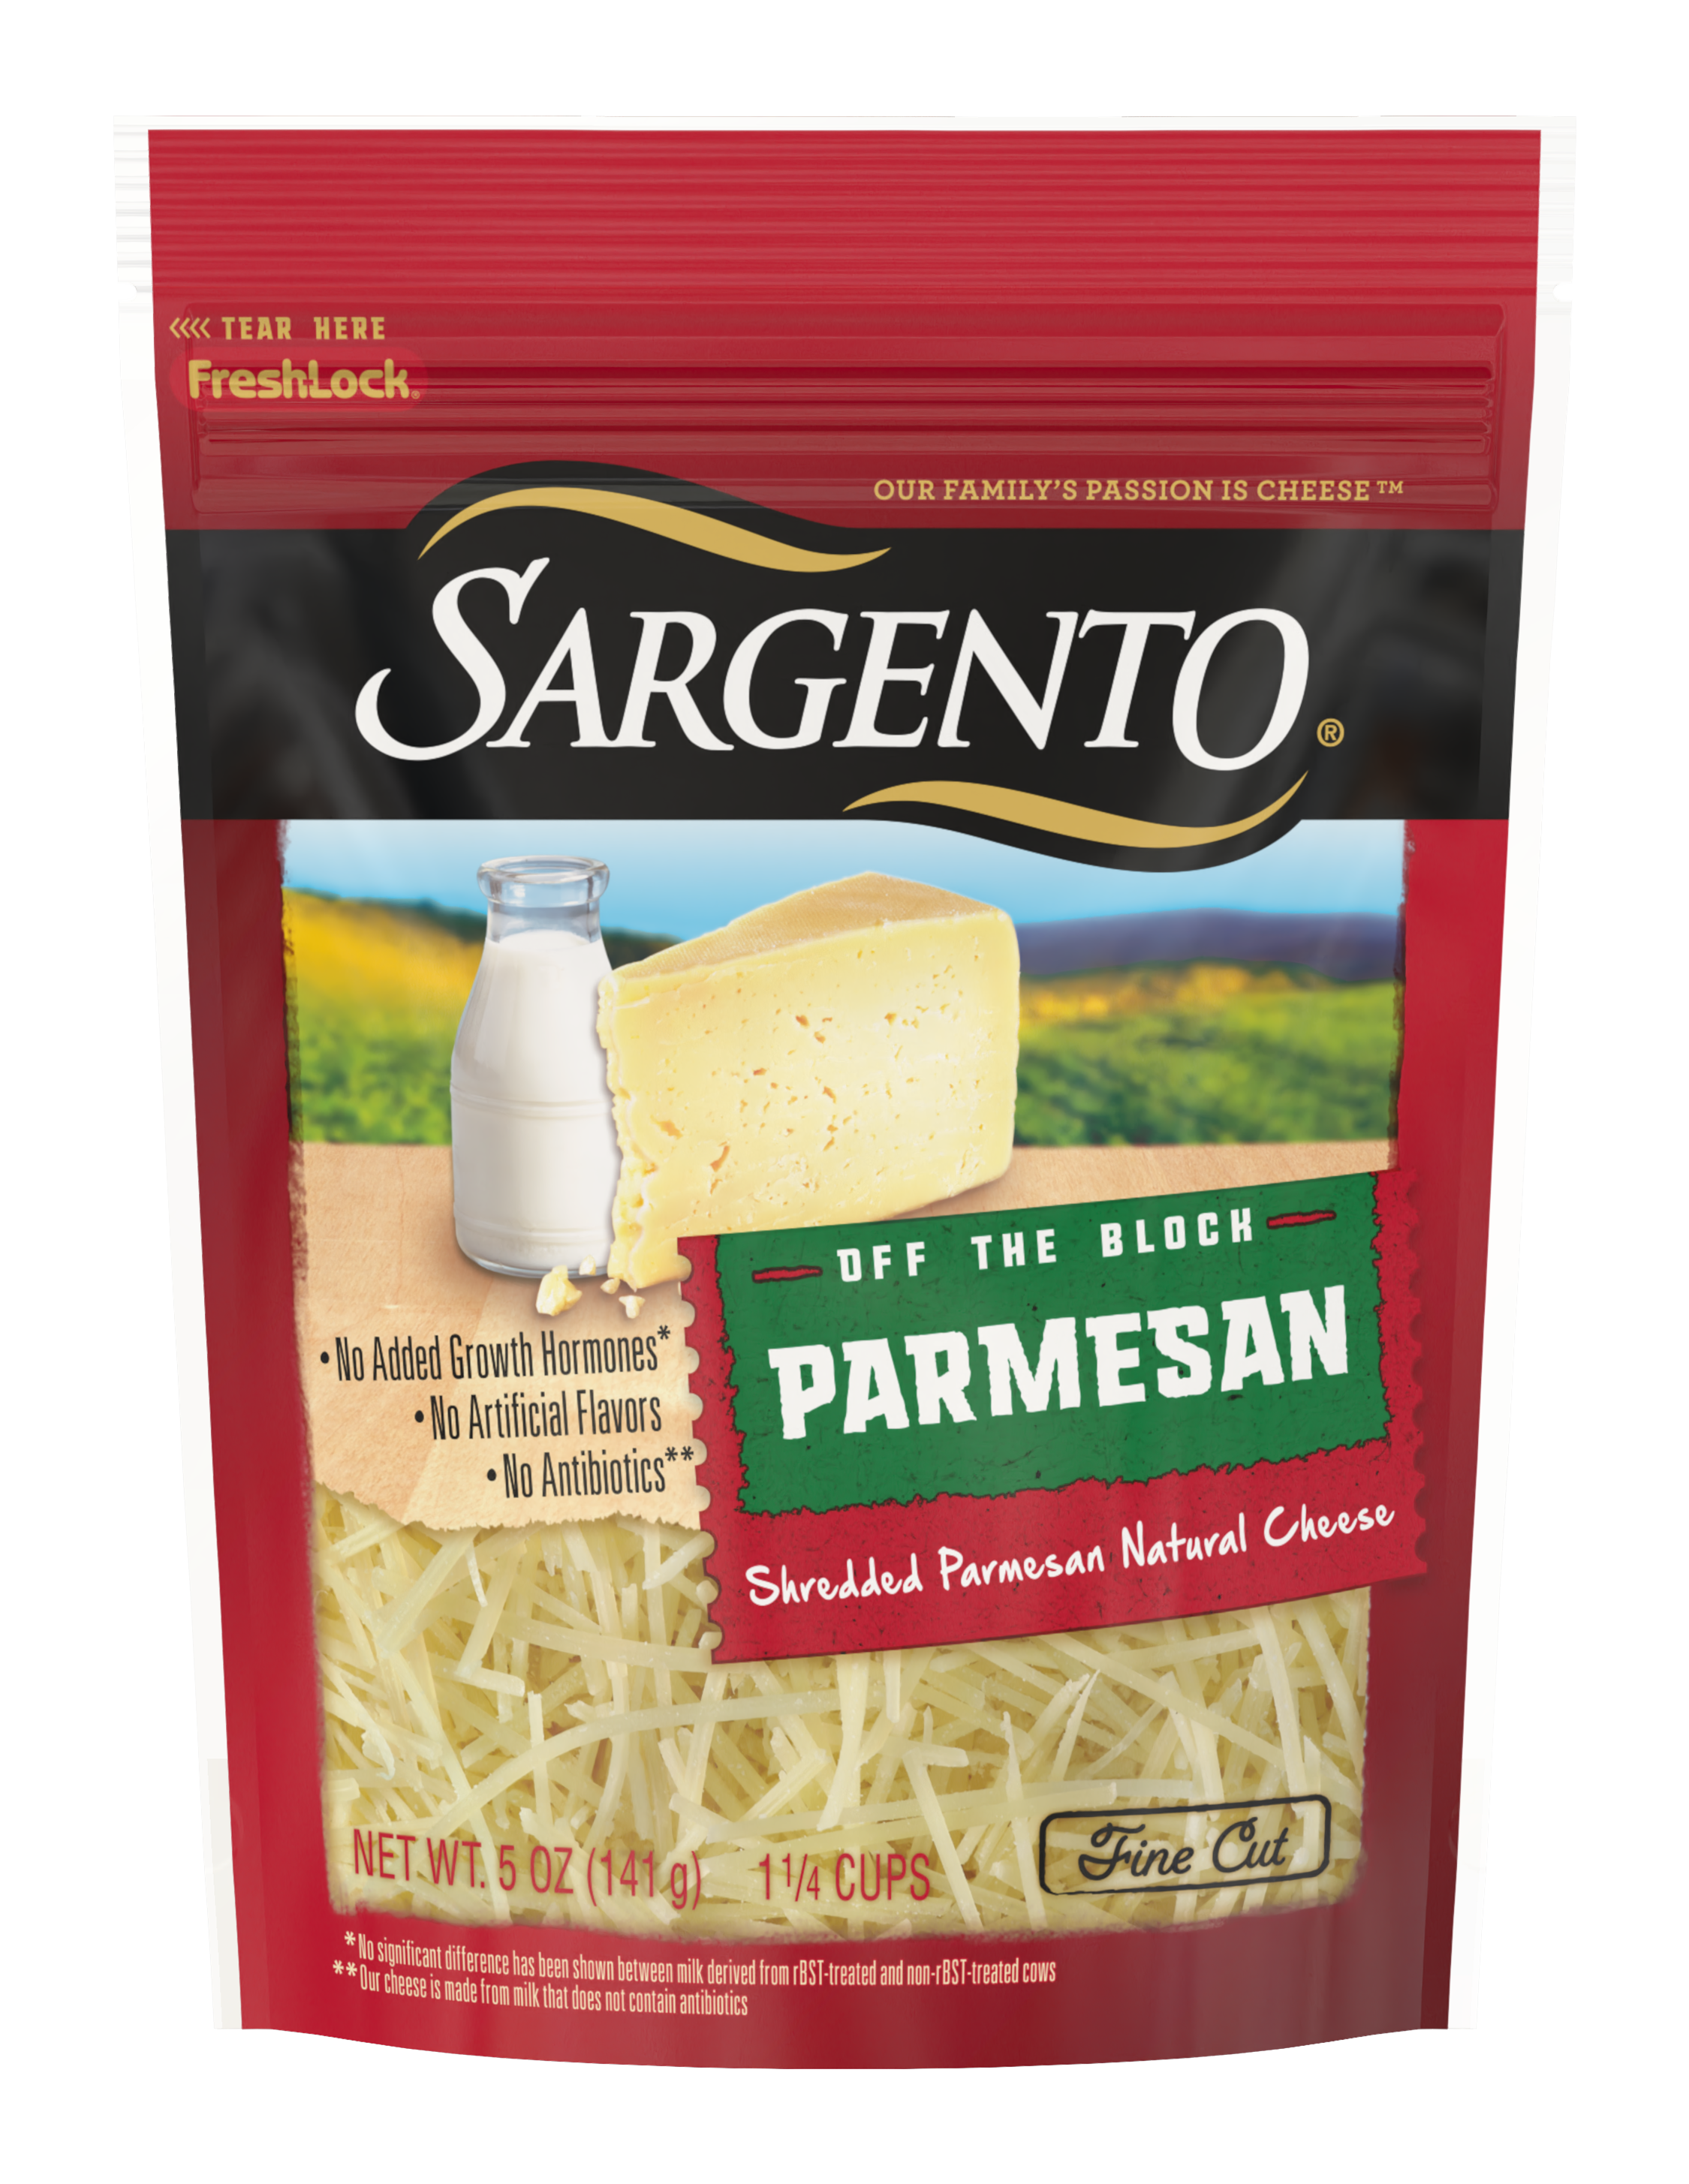 Shredded Parmesan Cheese Sargento,How To Make An Omelette